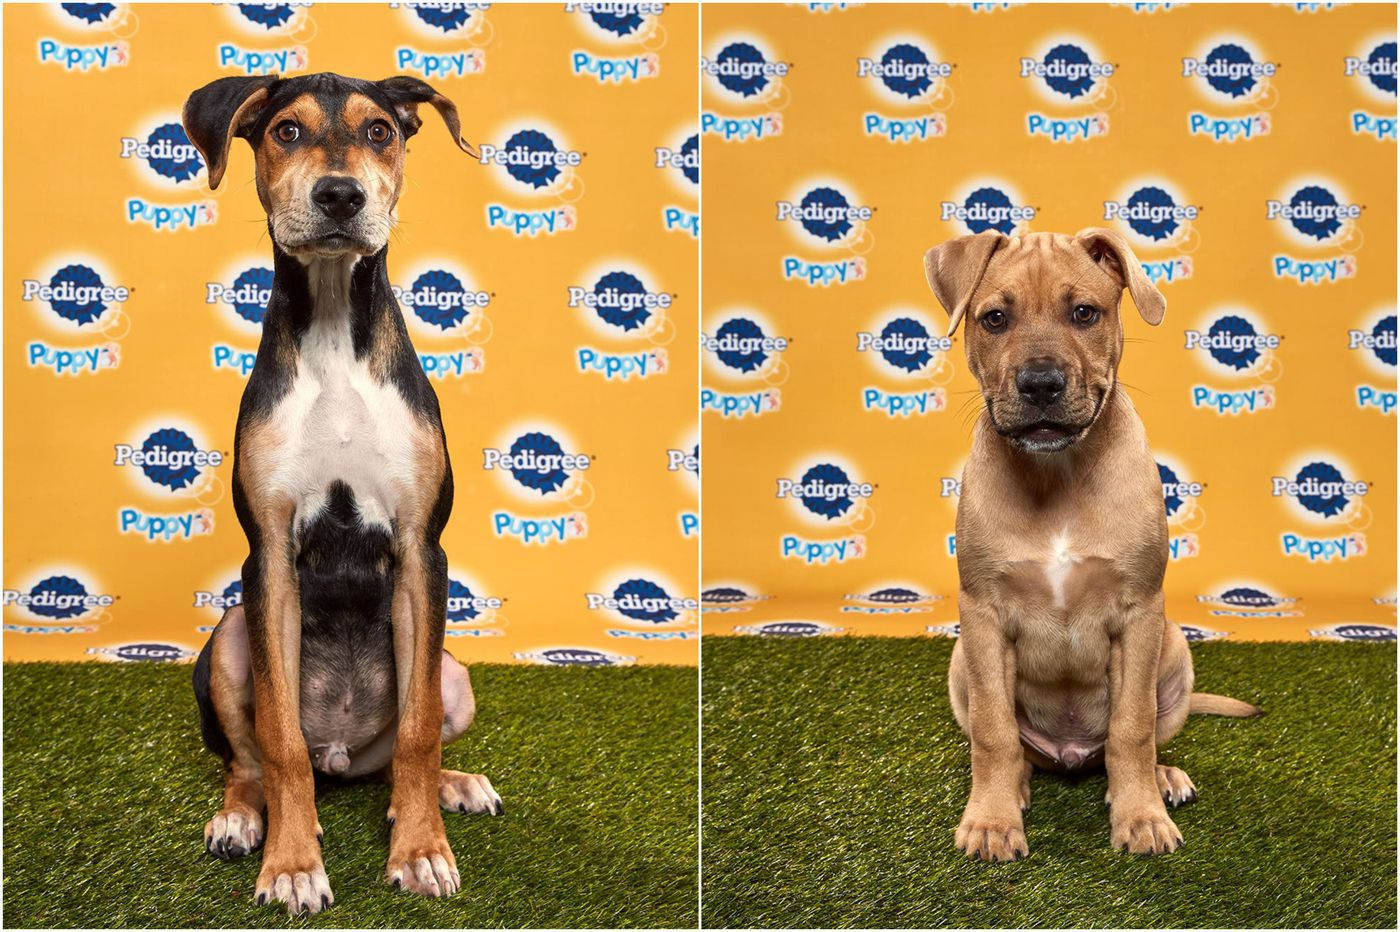 These two puppies from the Philly area won this year's Puppy Bowl